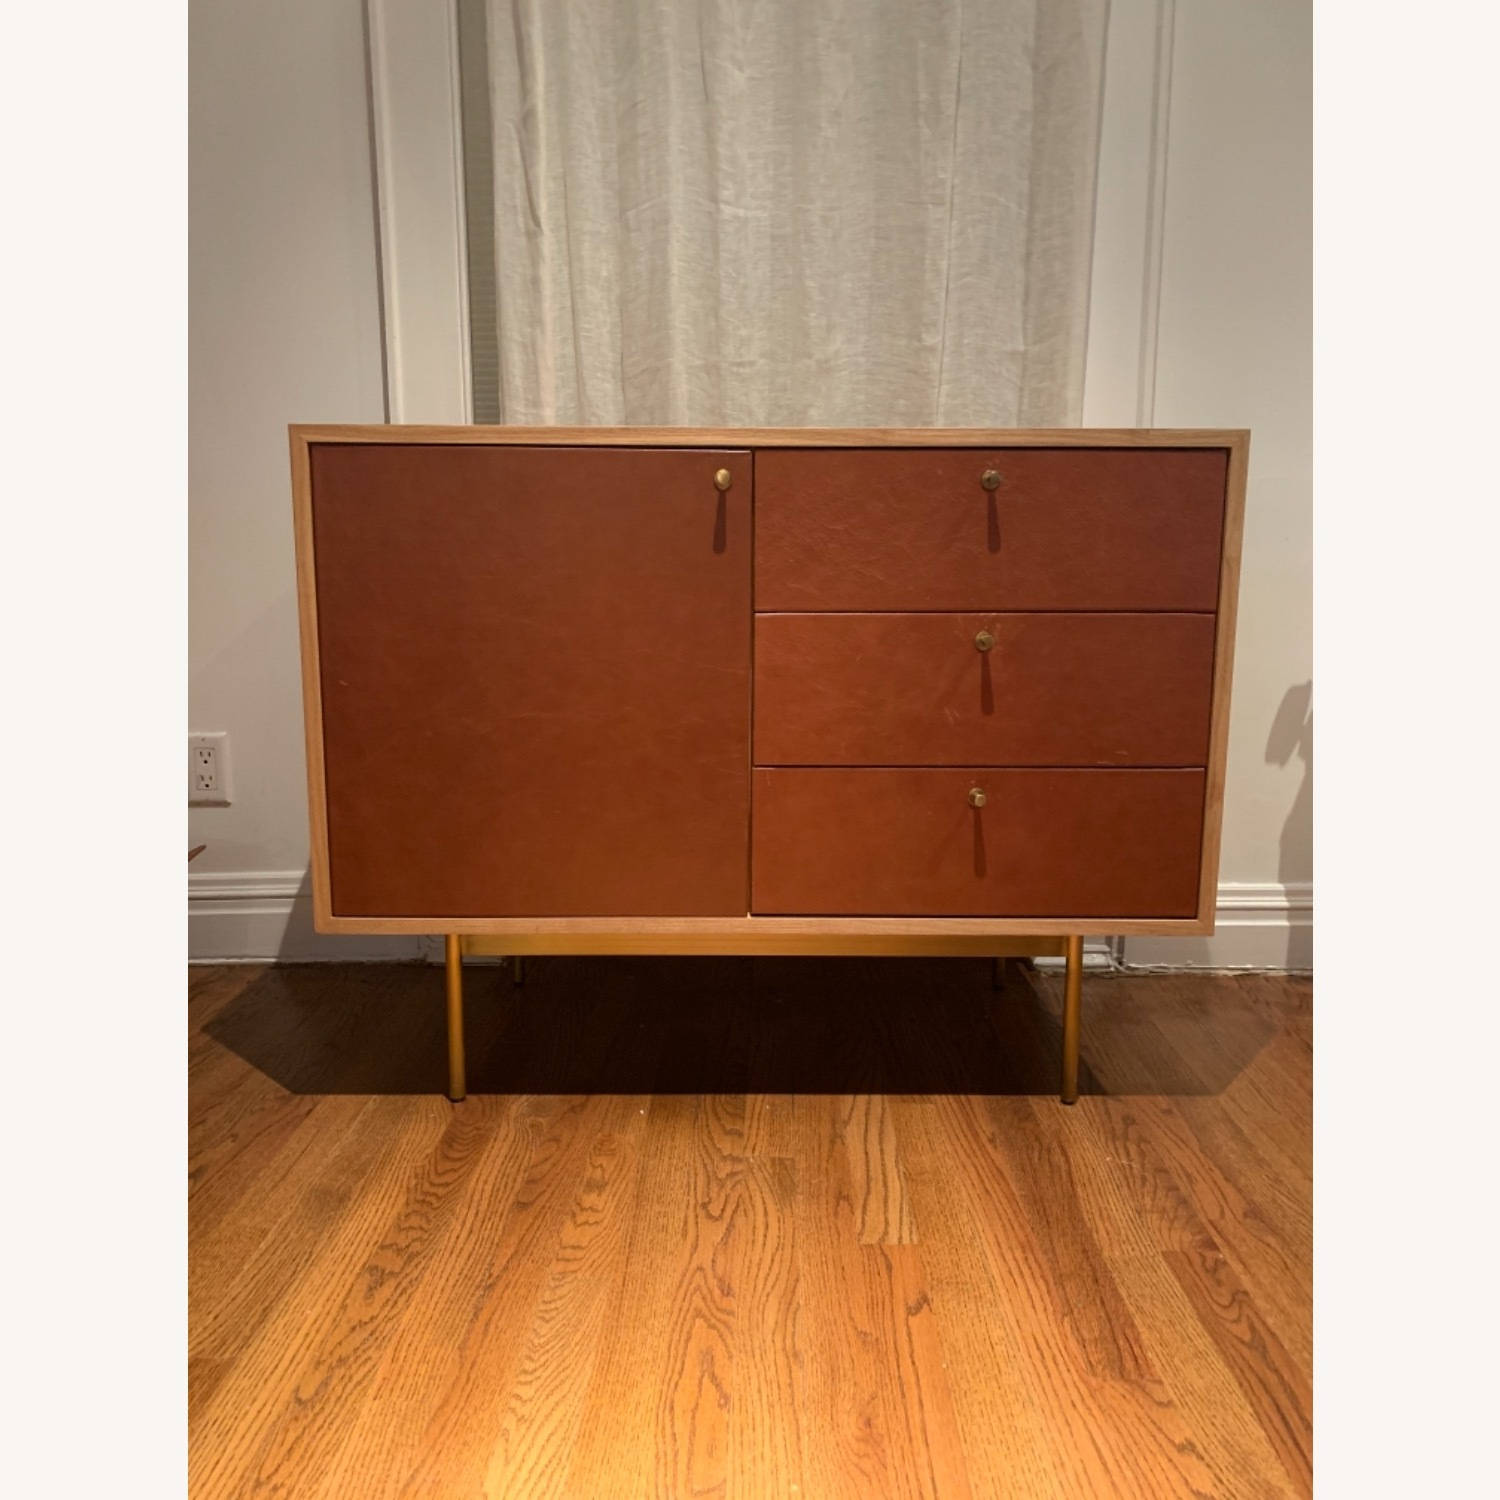 West Elm Michael Robbins Leather Front Sideboard - image-8